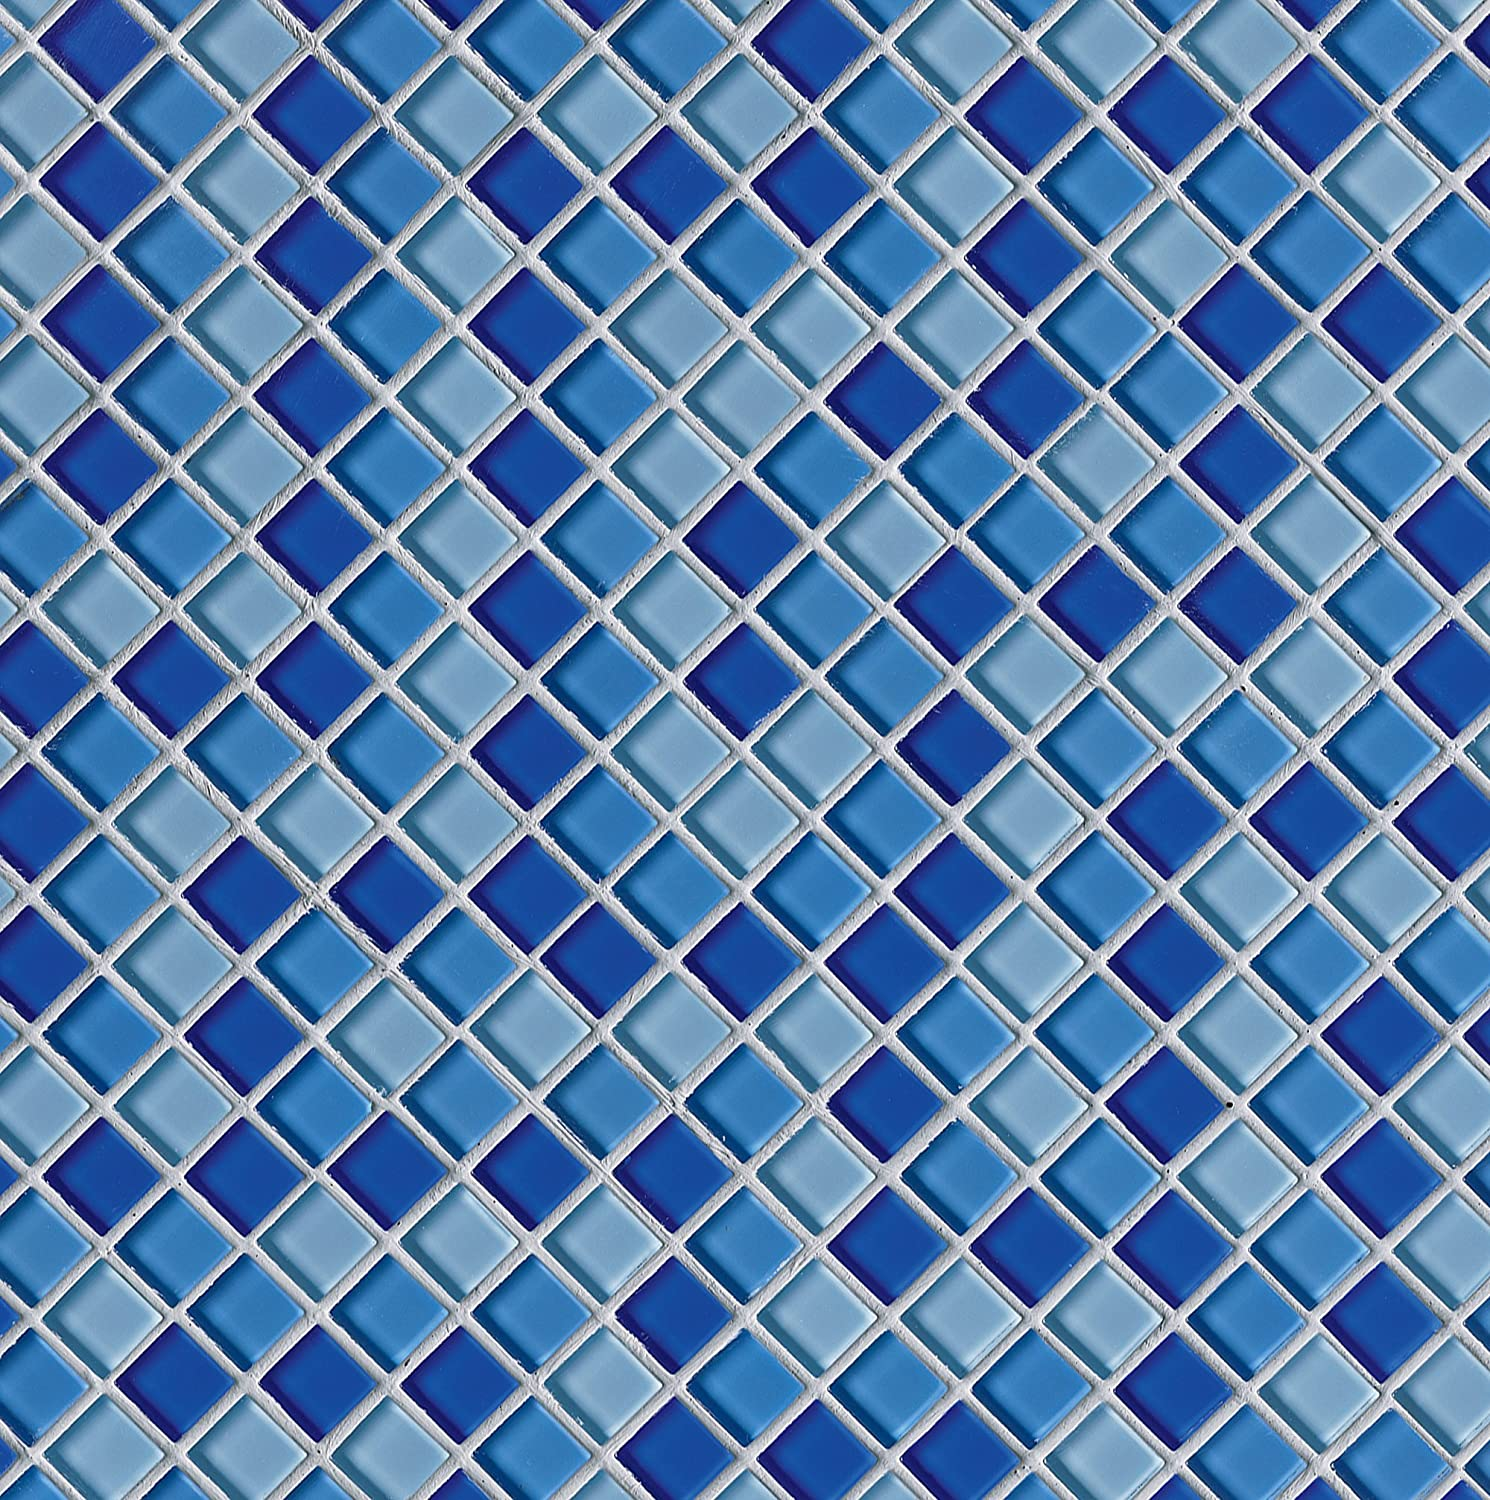 1 x 1 Crystallized Glass Glossy Mosaic in Blue Blend